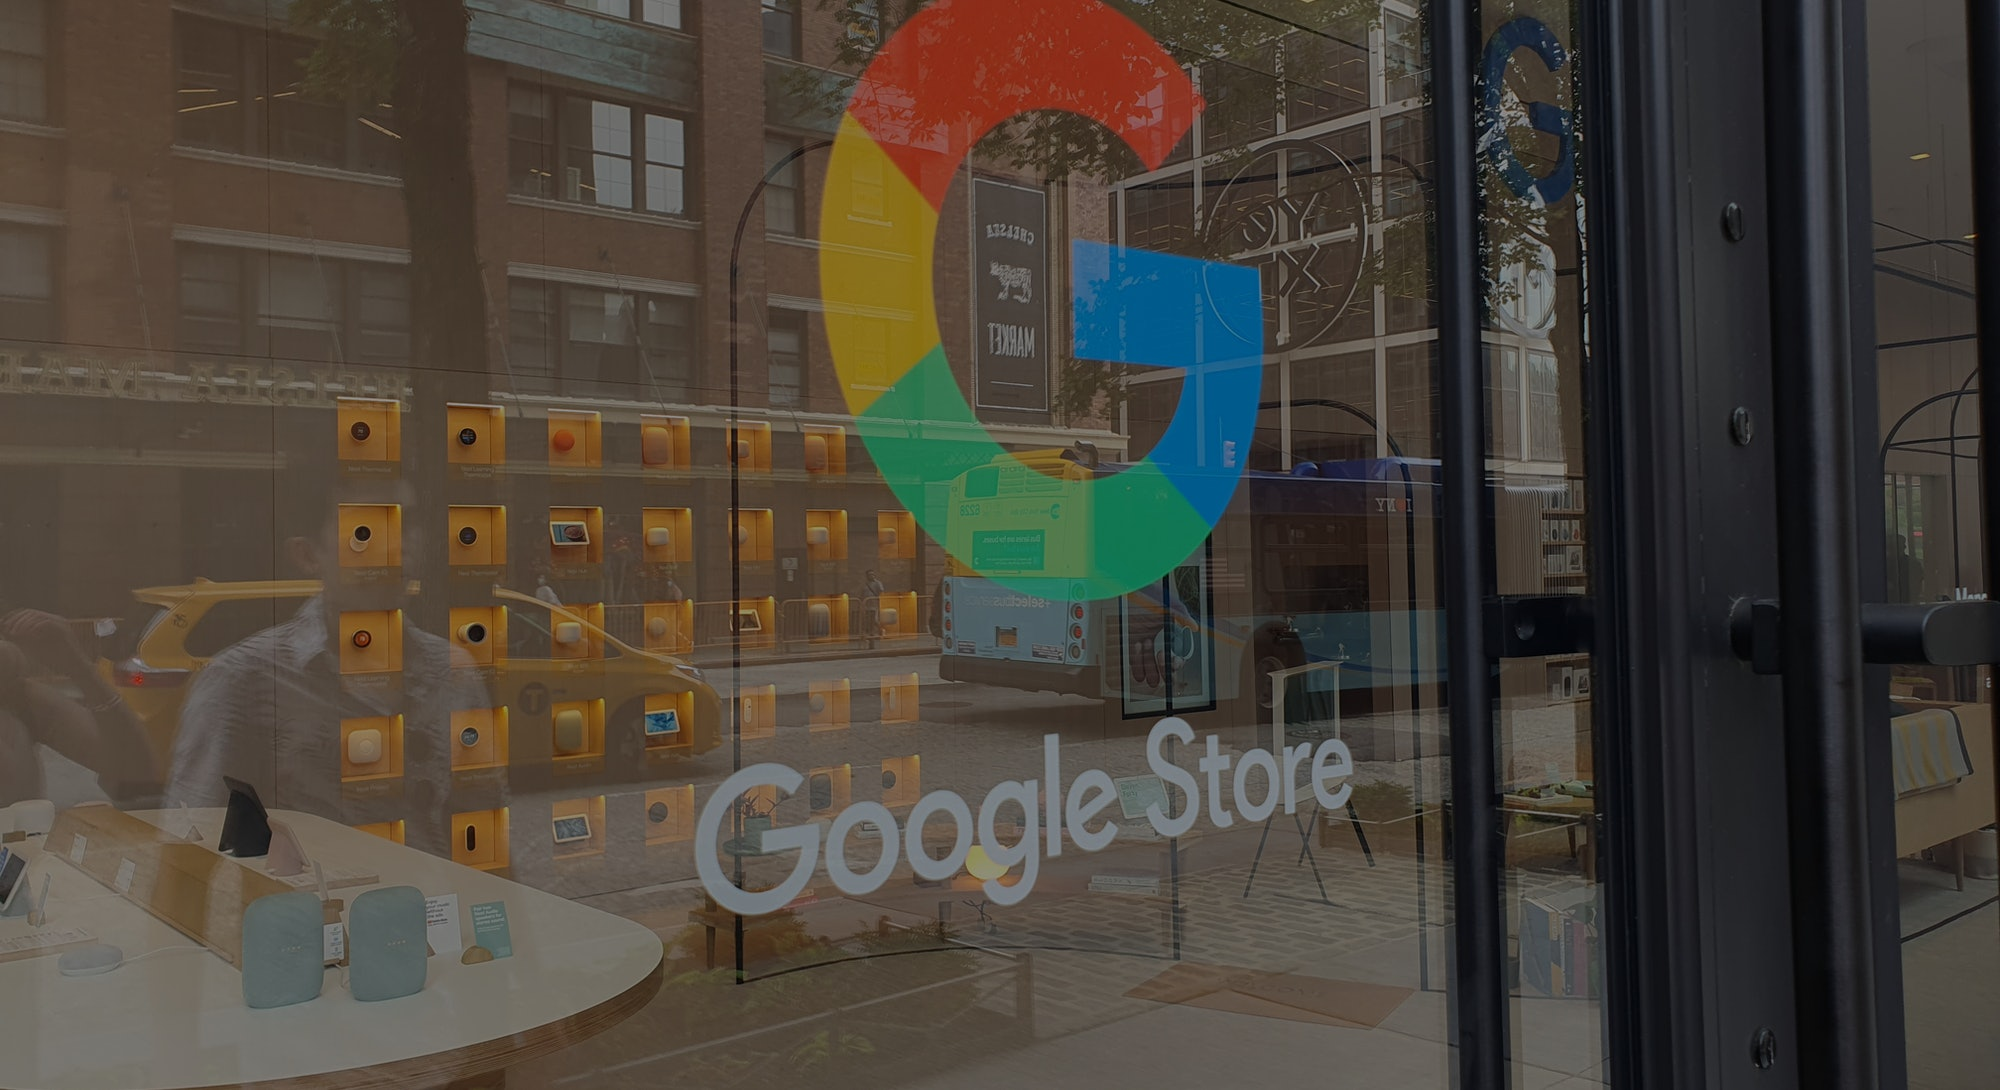 The Google Store in Chelsea, Manhattan, retail outlet, Pixel, Fitbit, Nest, Google Home